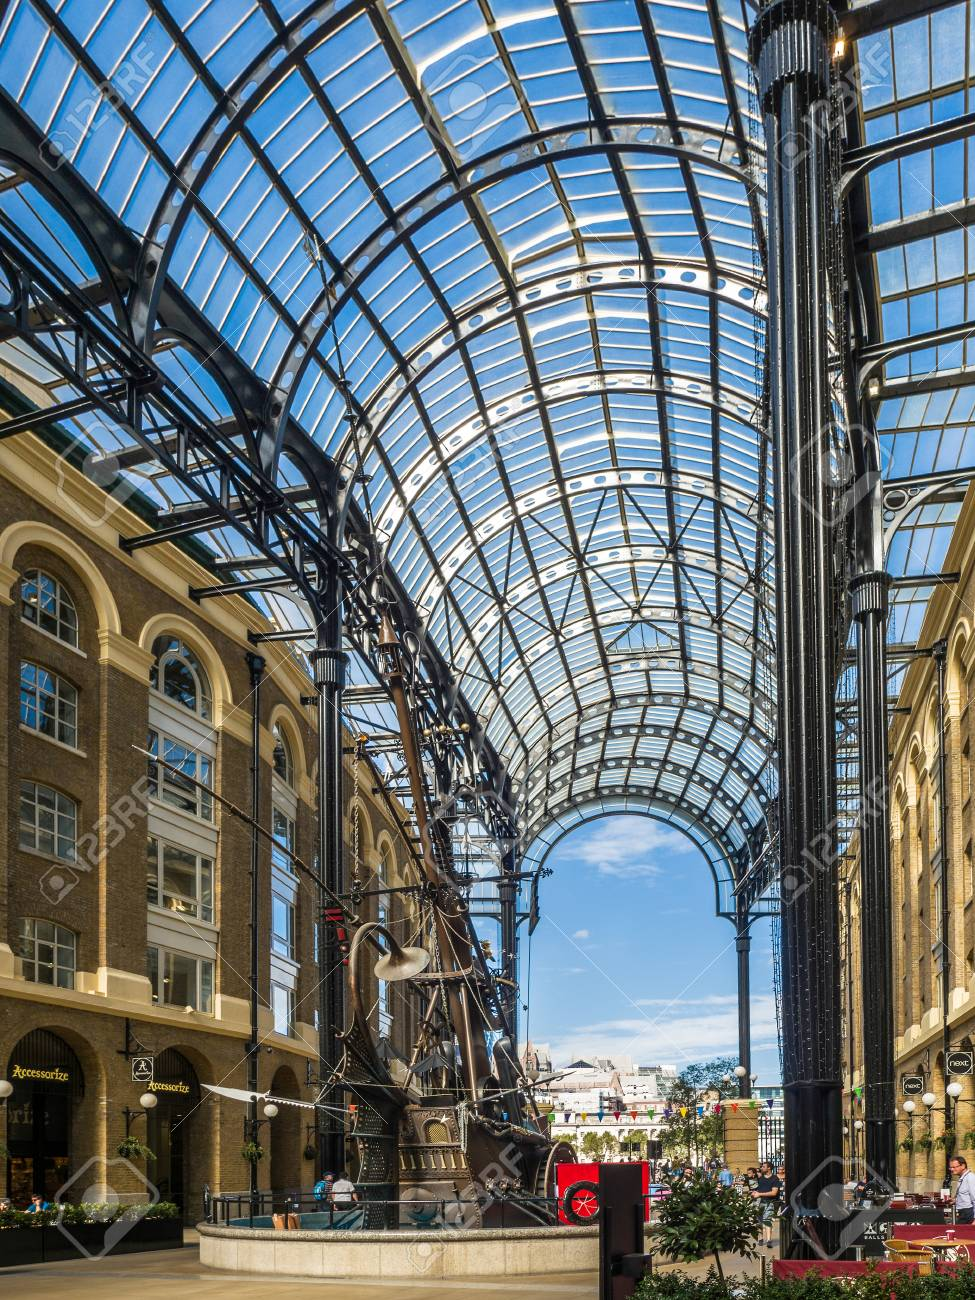 Old And Modern Architecture At Hays Galleria In London Stock Photo